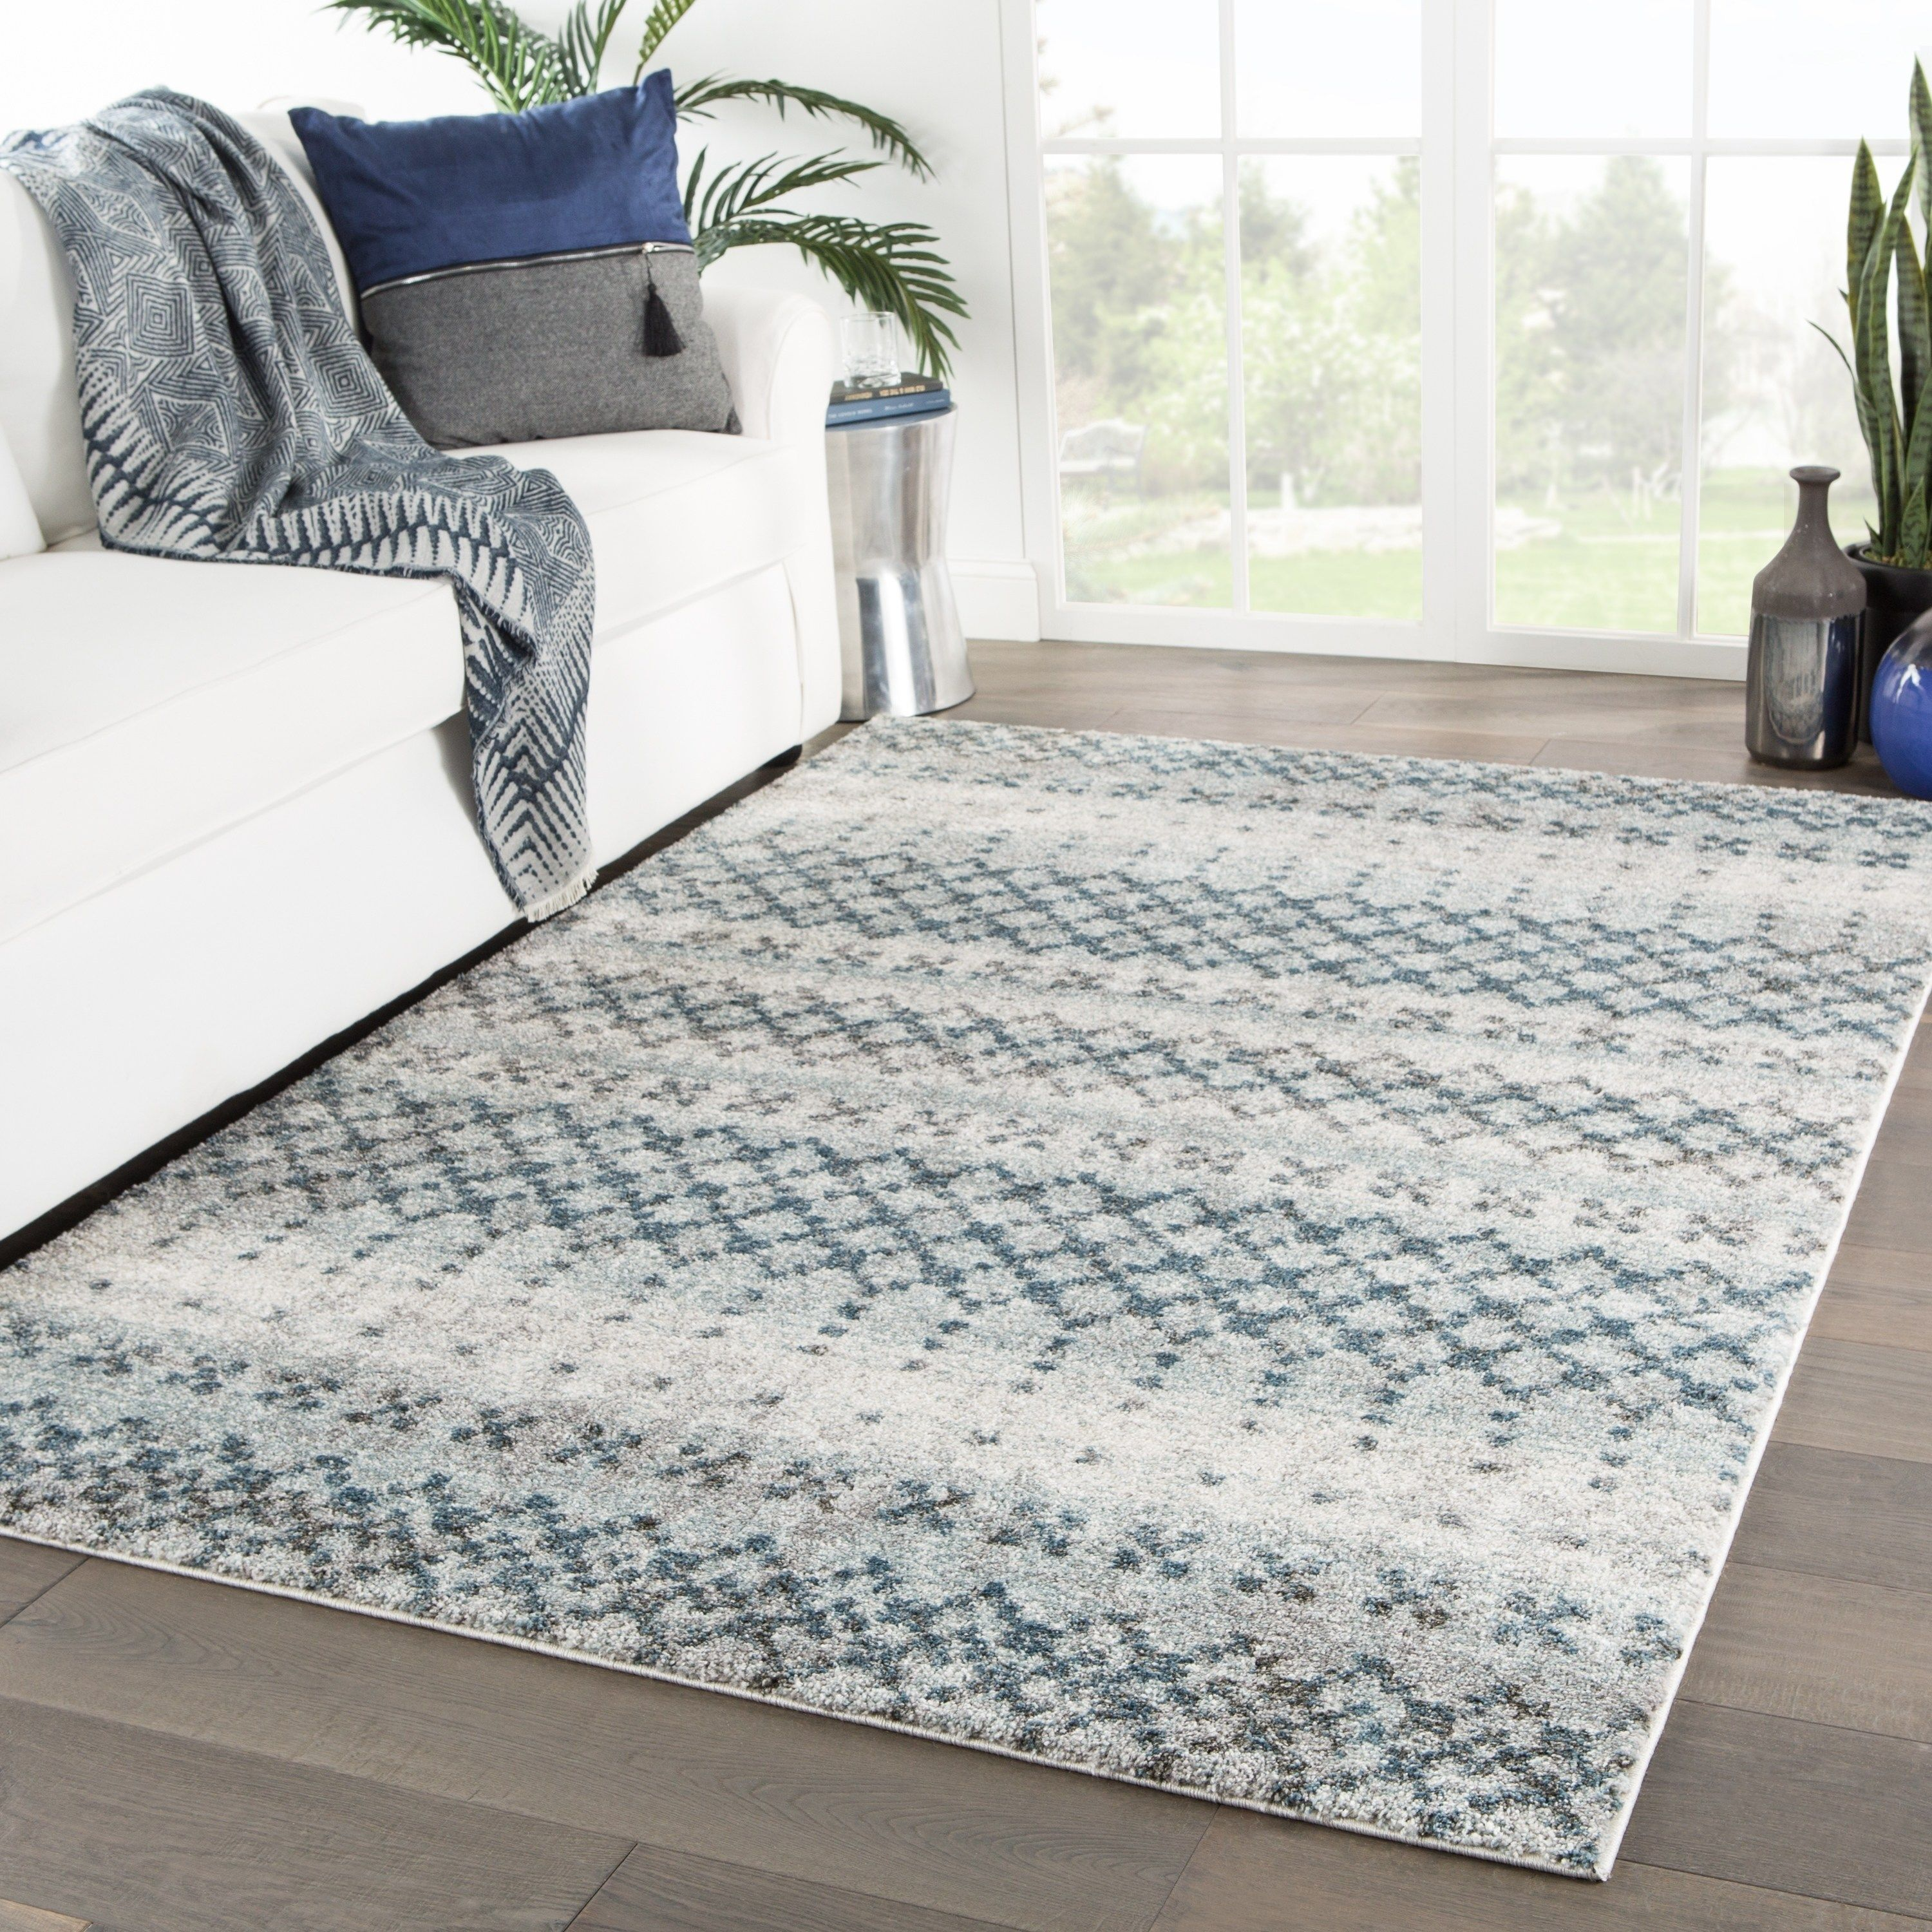 Tanjia Trellis Blue Gray Runner Rug 2 6 X 8 Runner 2 6 X 8 Runner Blue Grey Juniper Home Beige Area Rugs Cream Area Rug Rugs